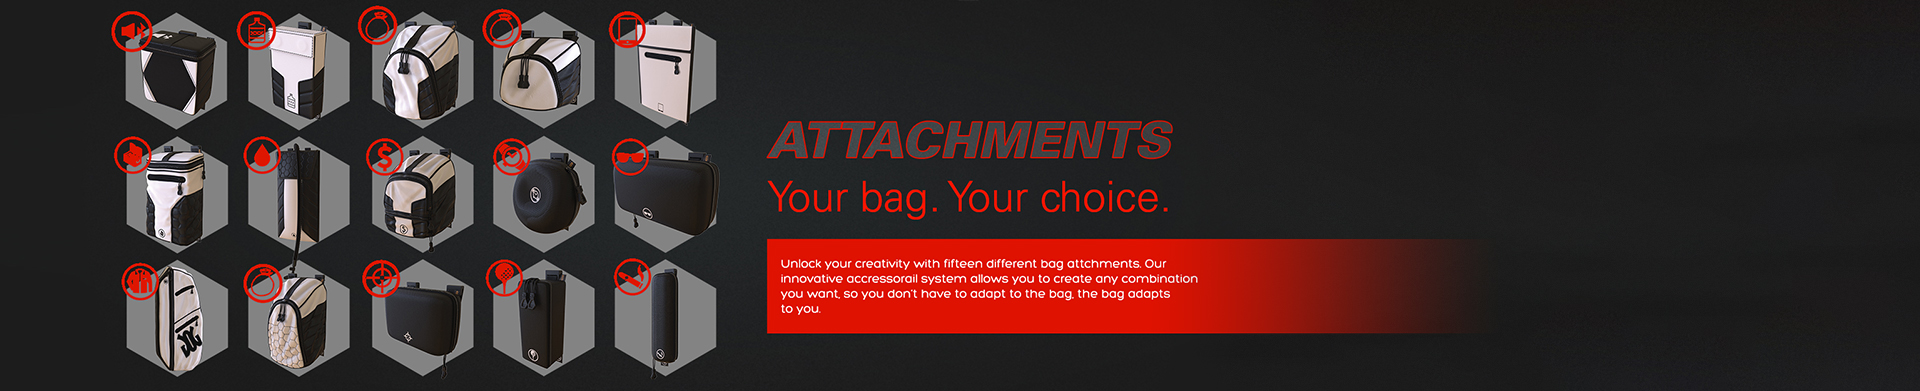 page-banner-bag-attachments.jpg